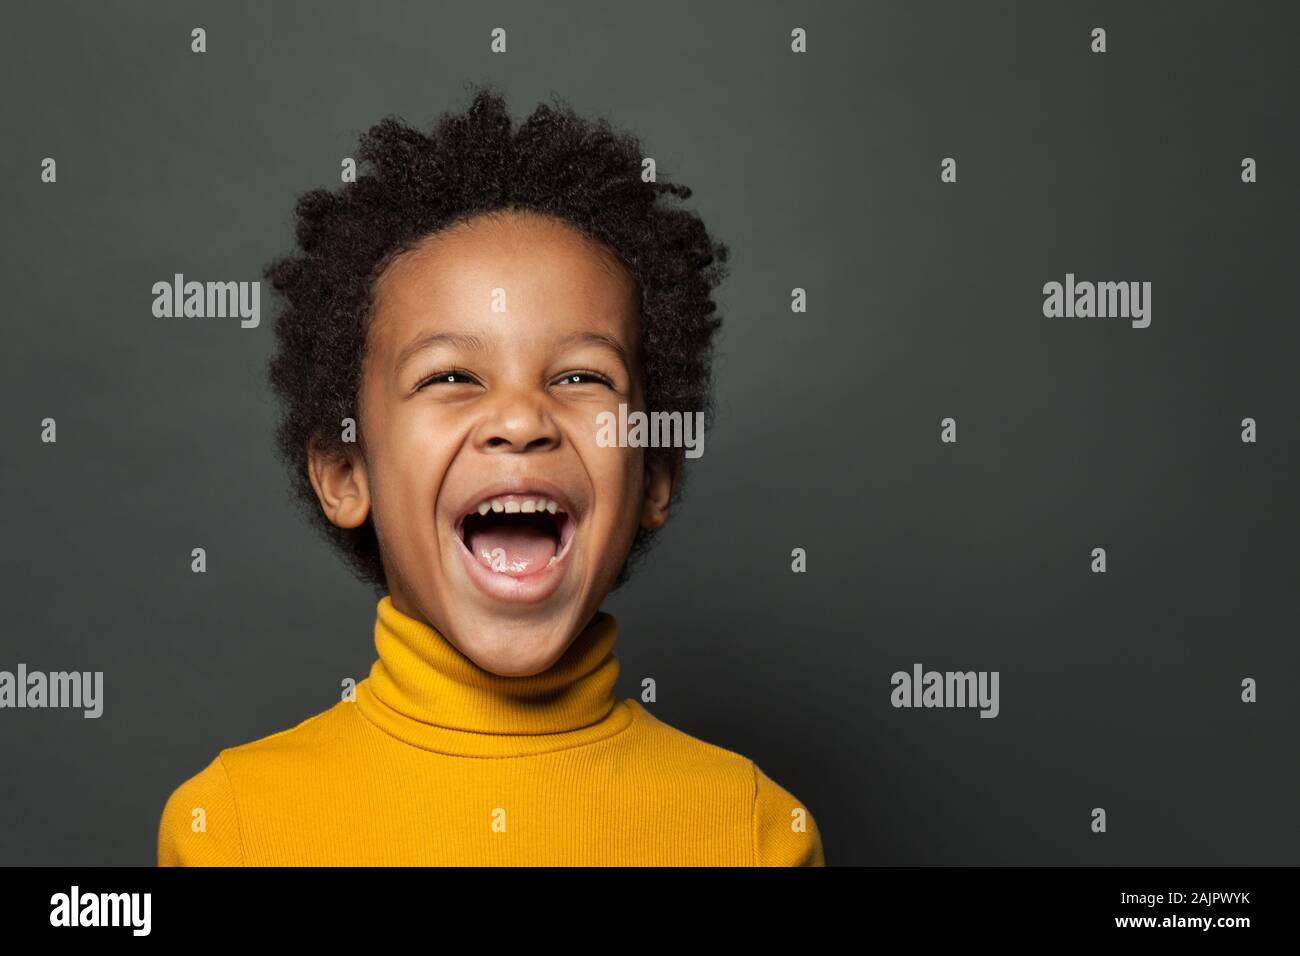 Little boy black child laughing. Closeup portrait Stock Photo